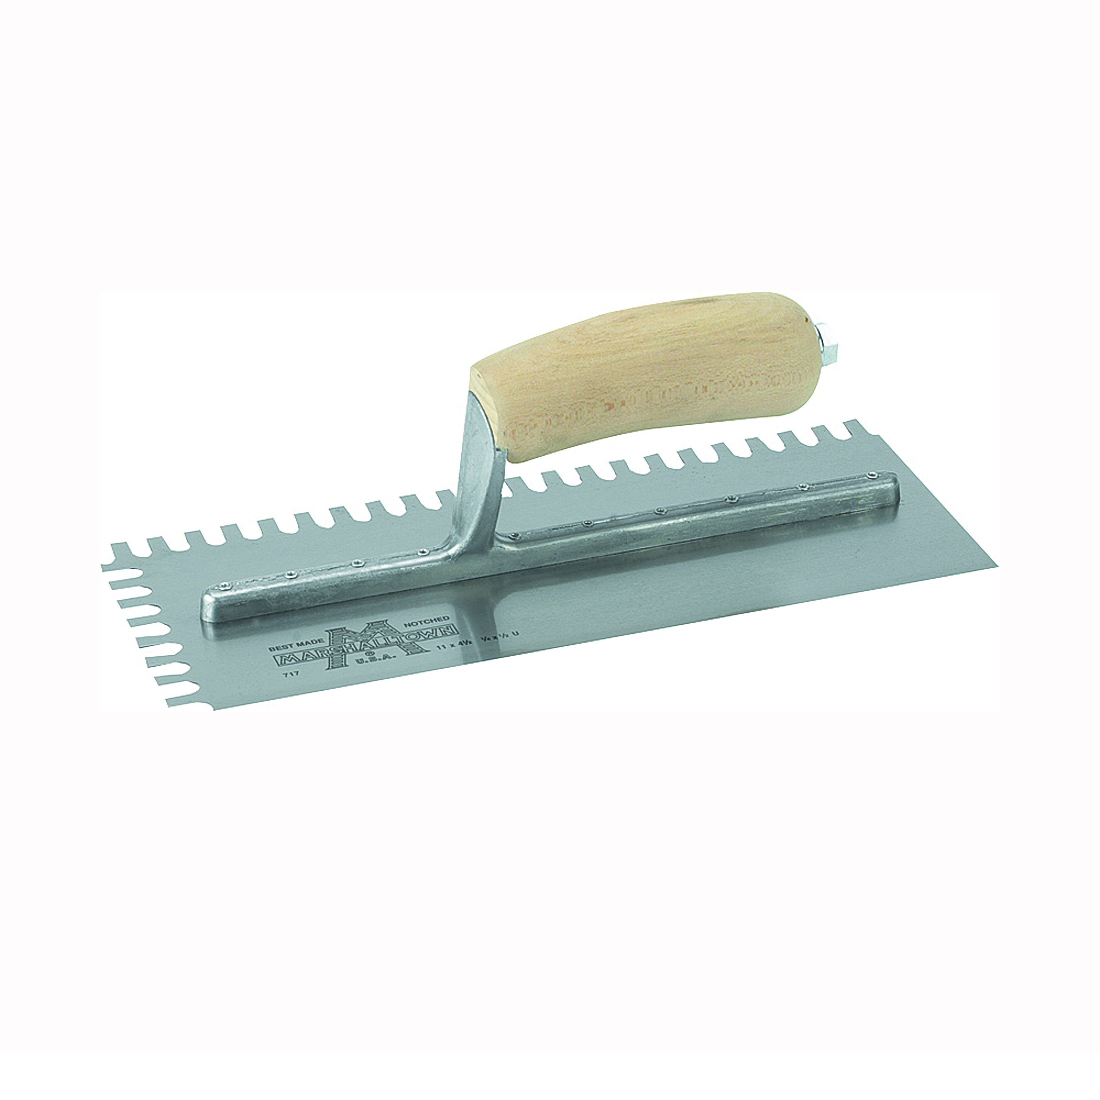 Picture of Marshalltown 704S Trowel, 11 in L, 4-1/2 in W, U Notch, Curved Handle